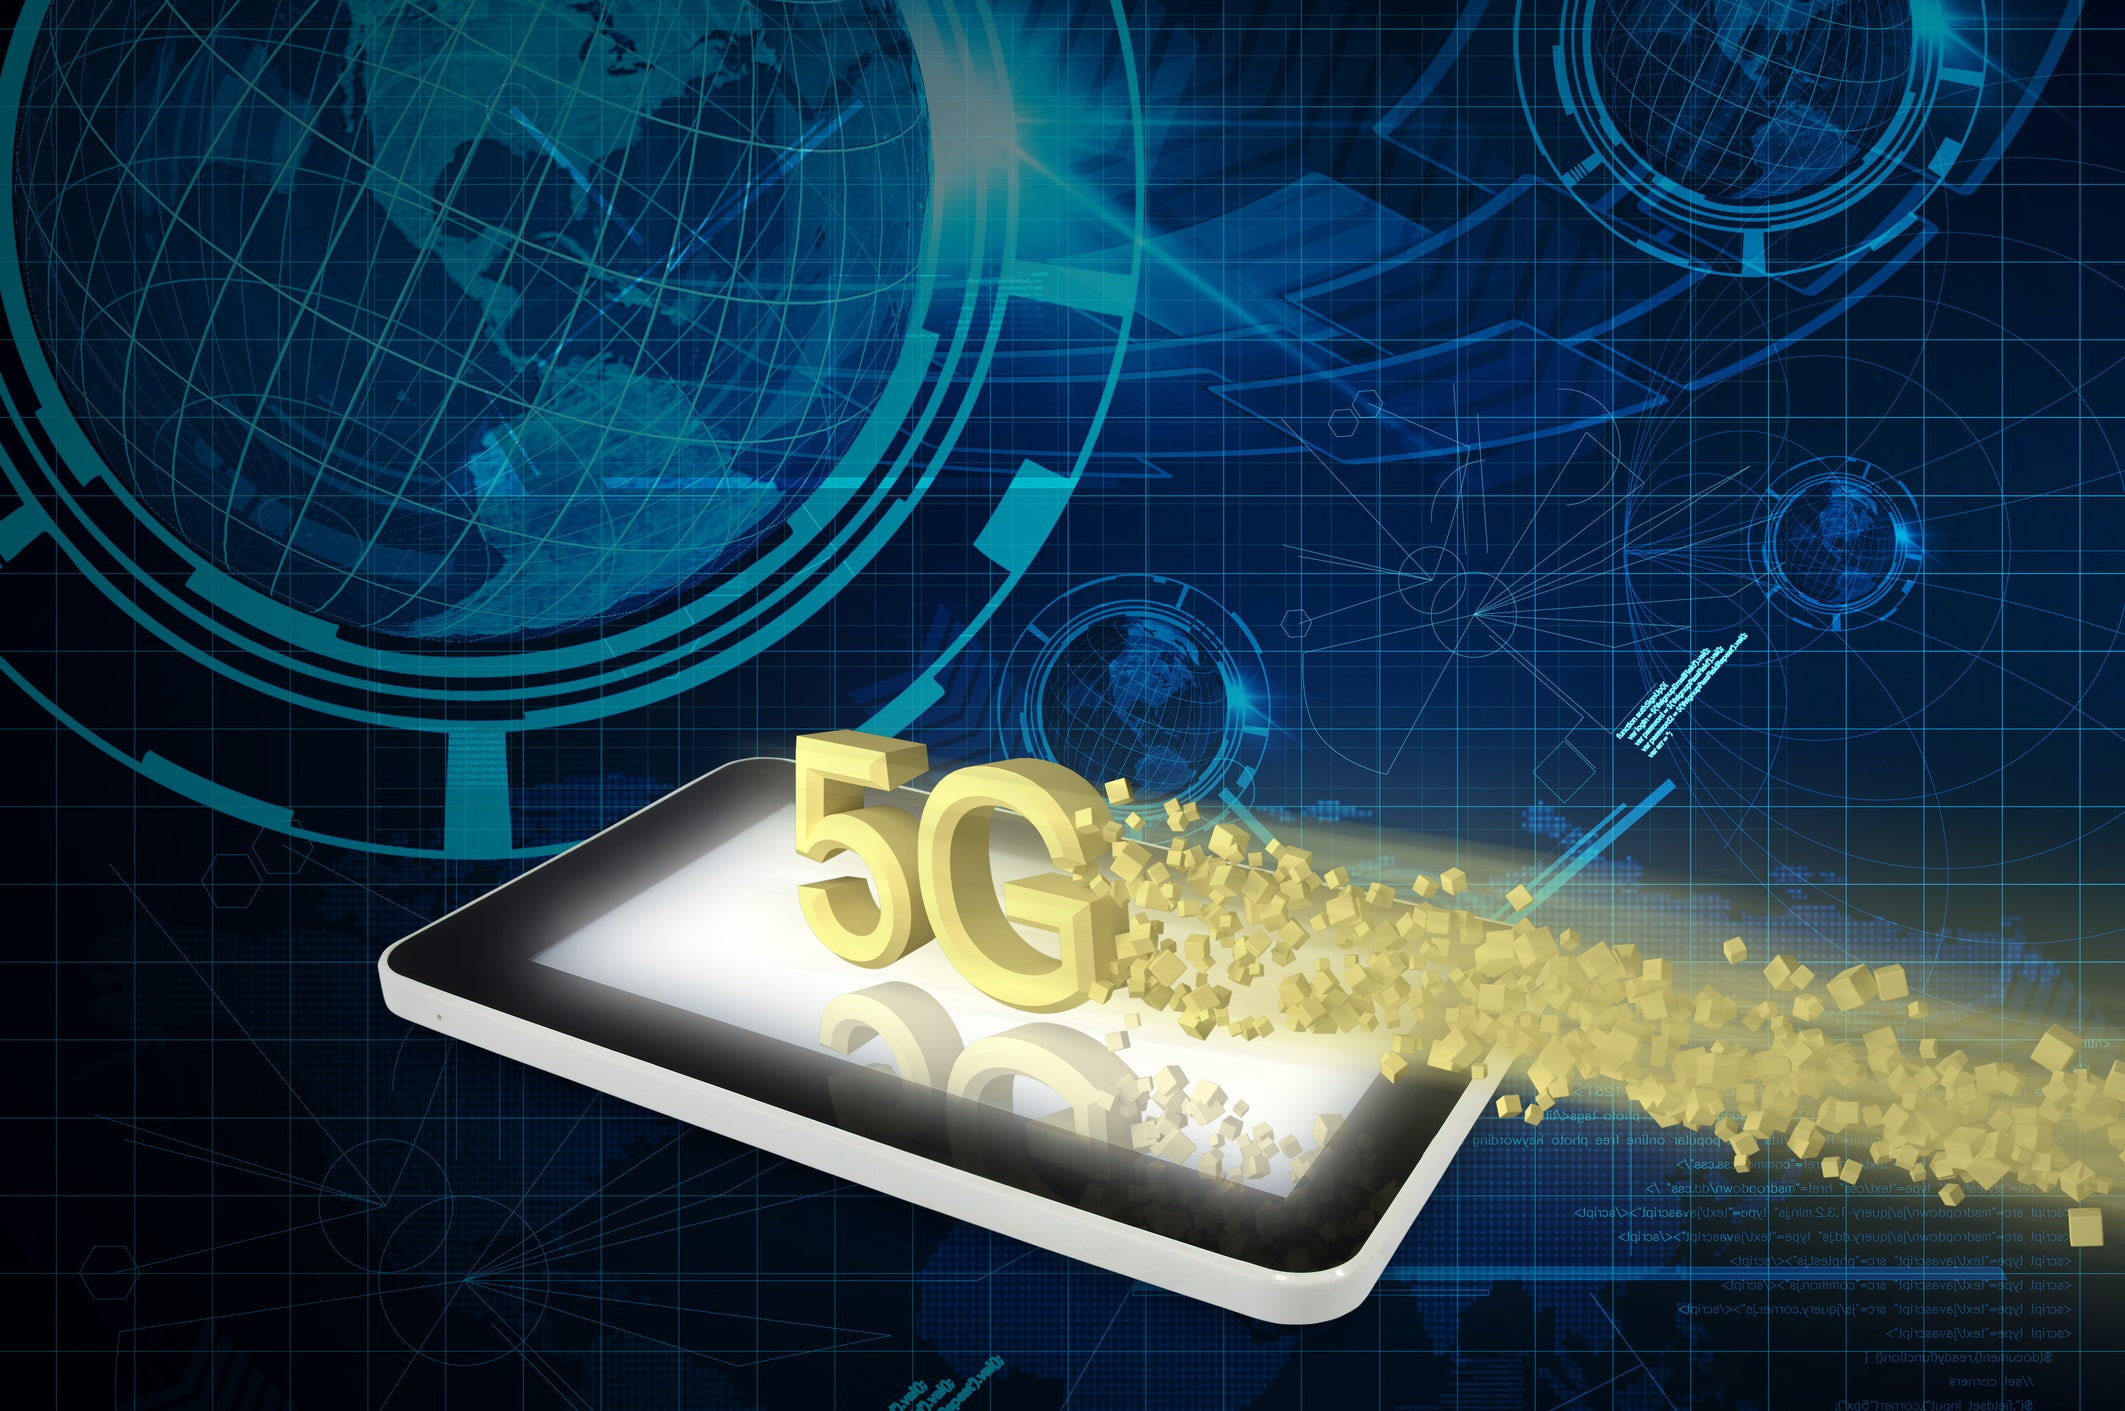 Report: Apple Ready to Launch 5G iPhone Production with Cheapest Model First